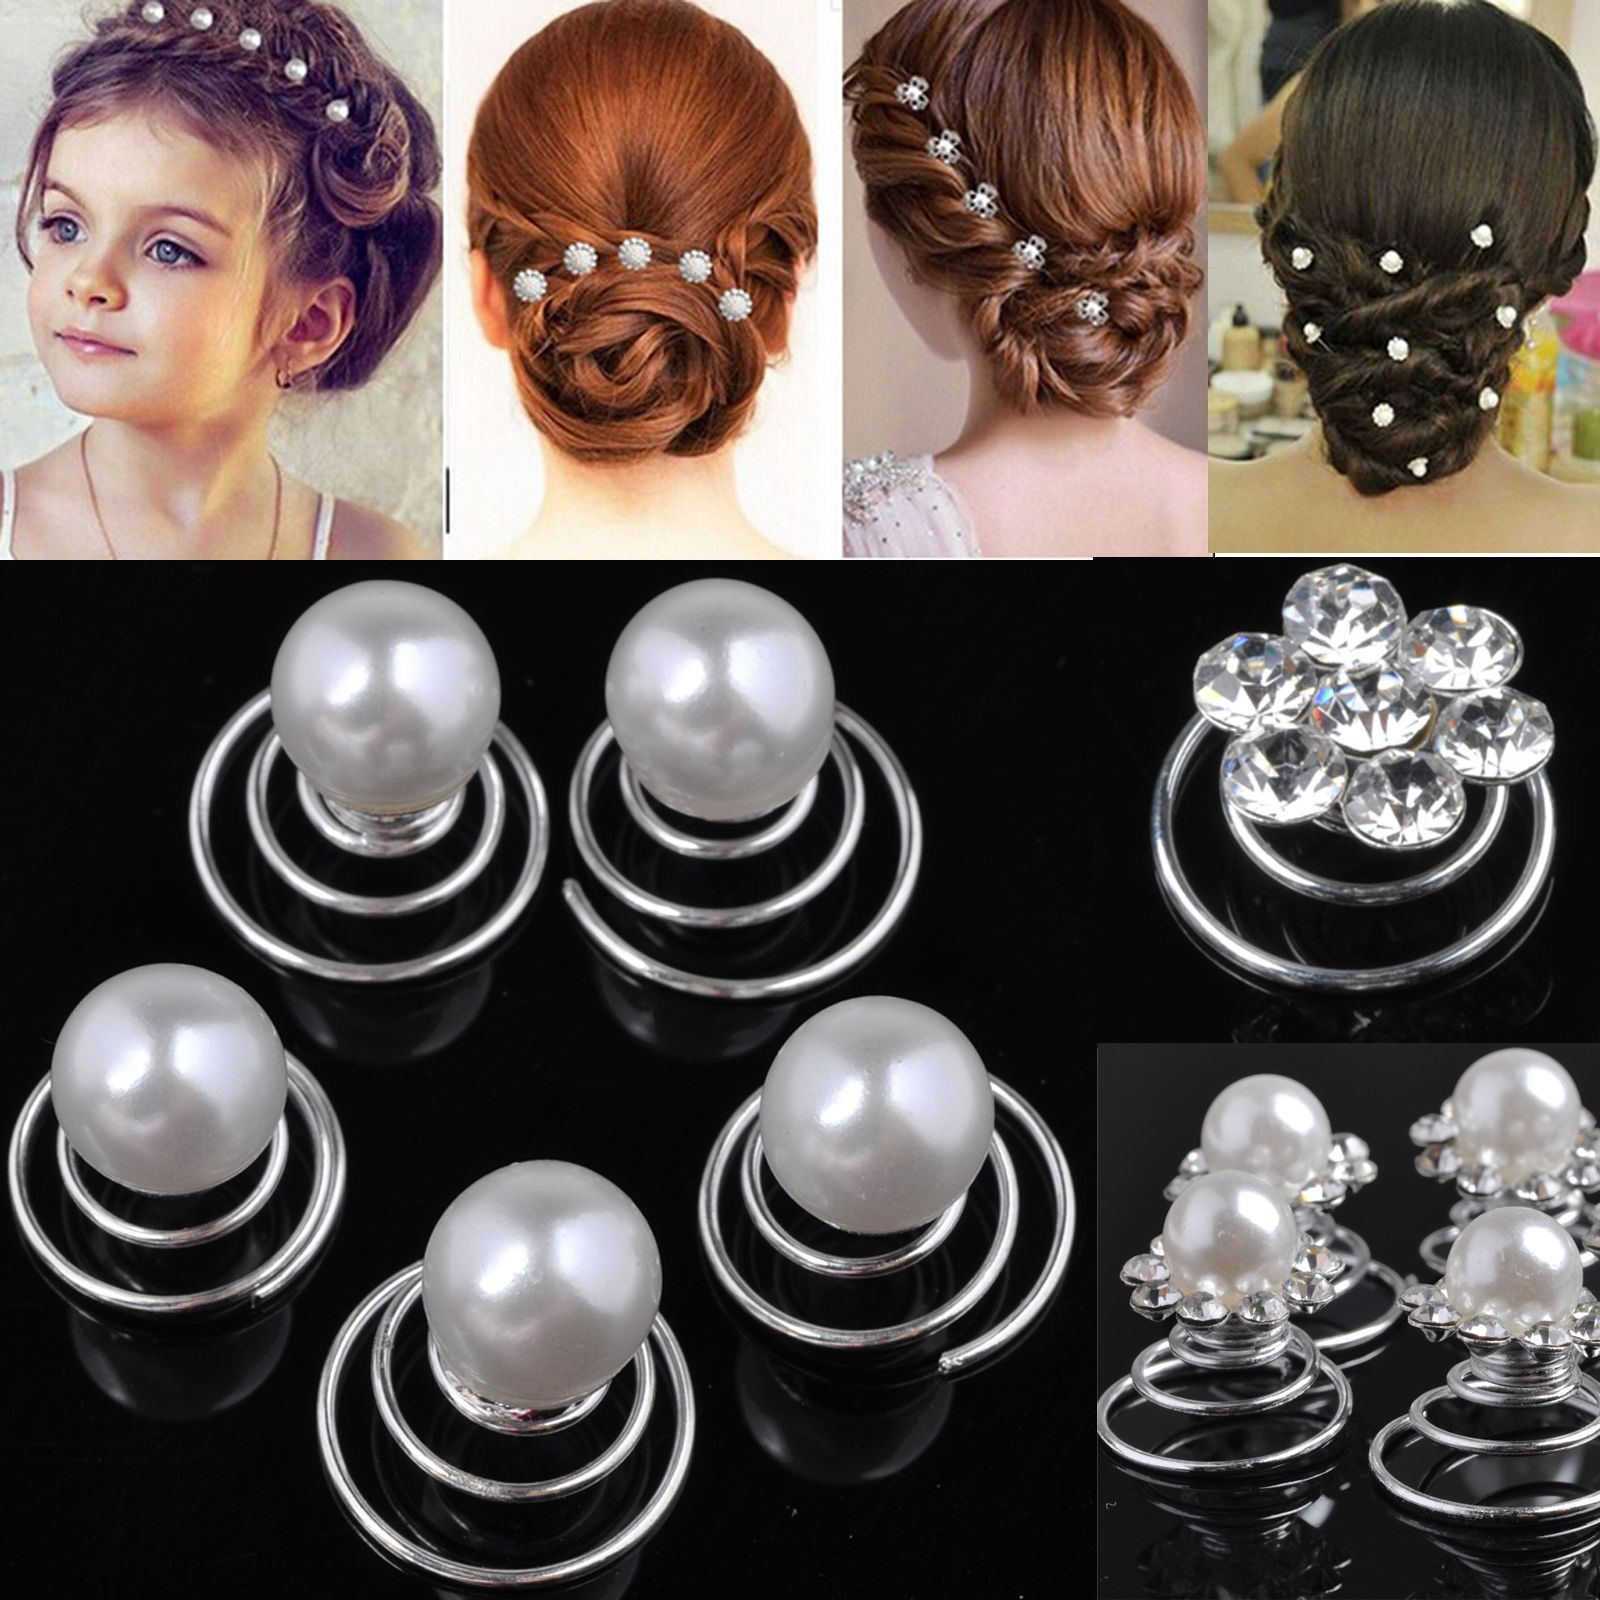 5x Bridal Flower Hair Spin  Crystal Rhinestone Pins Twists Coils Hairpin